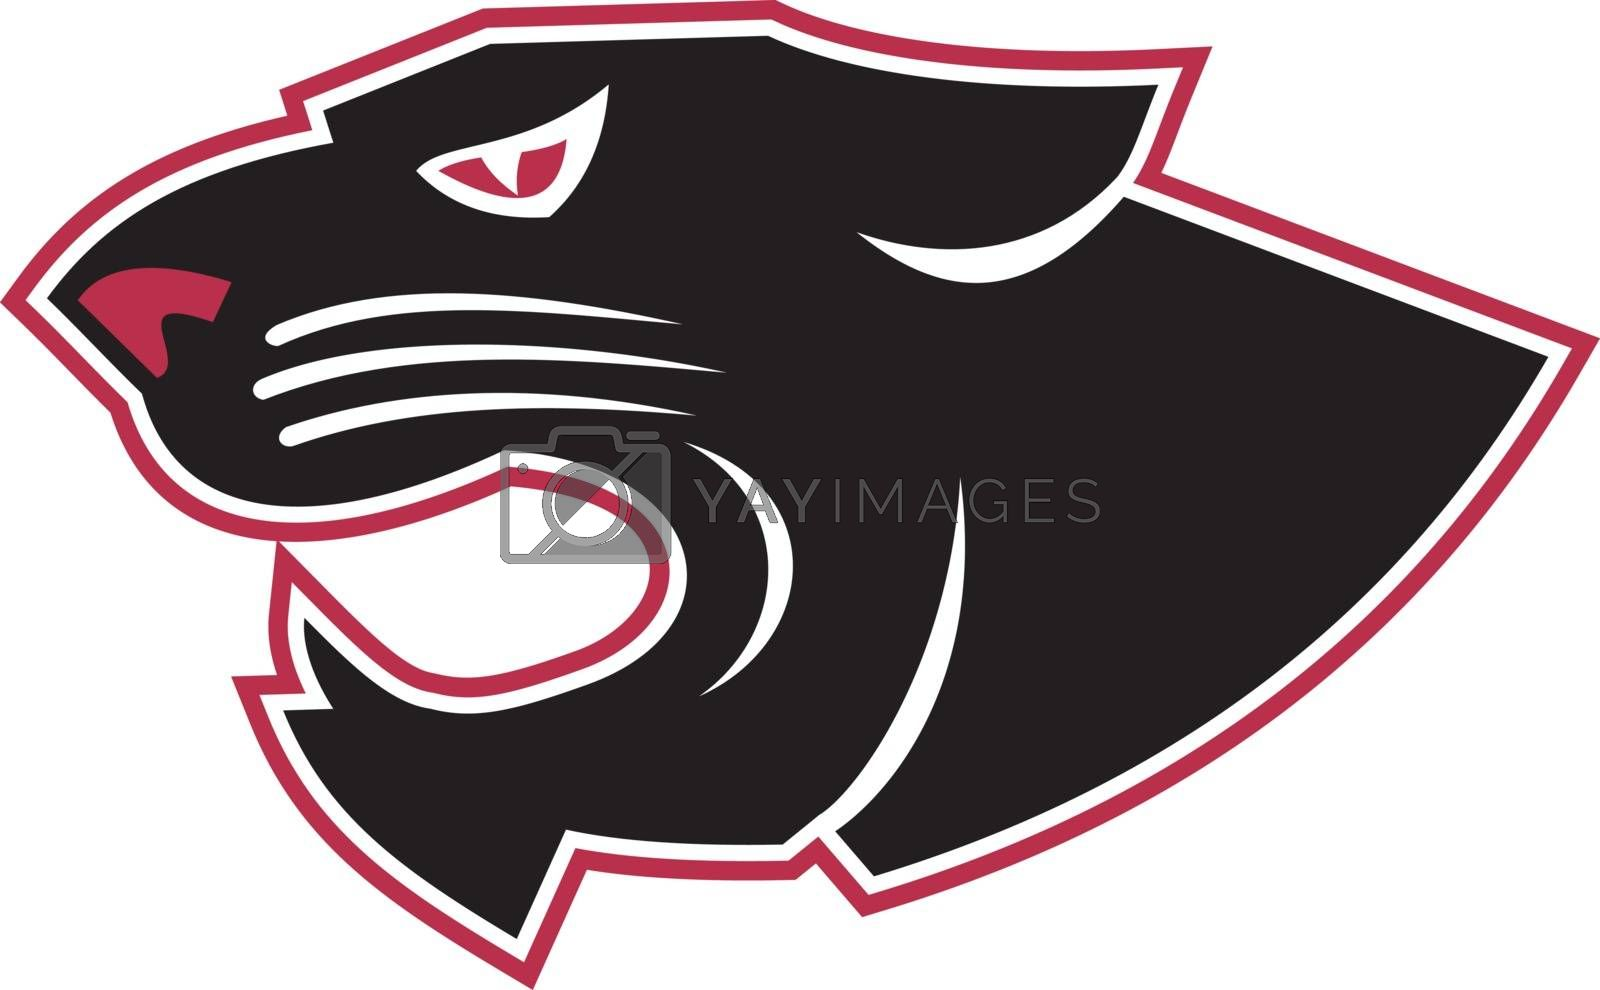 Icon style illustration of an angry aggressive panther head viewed from side on isolated background.